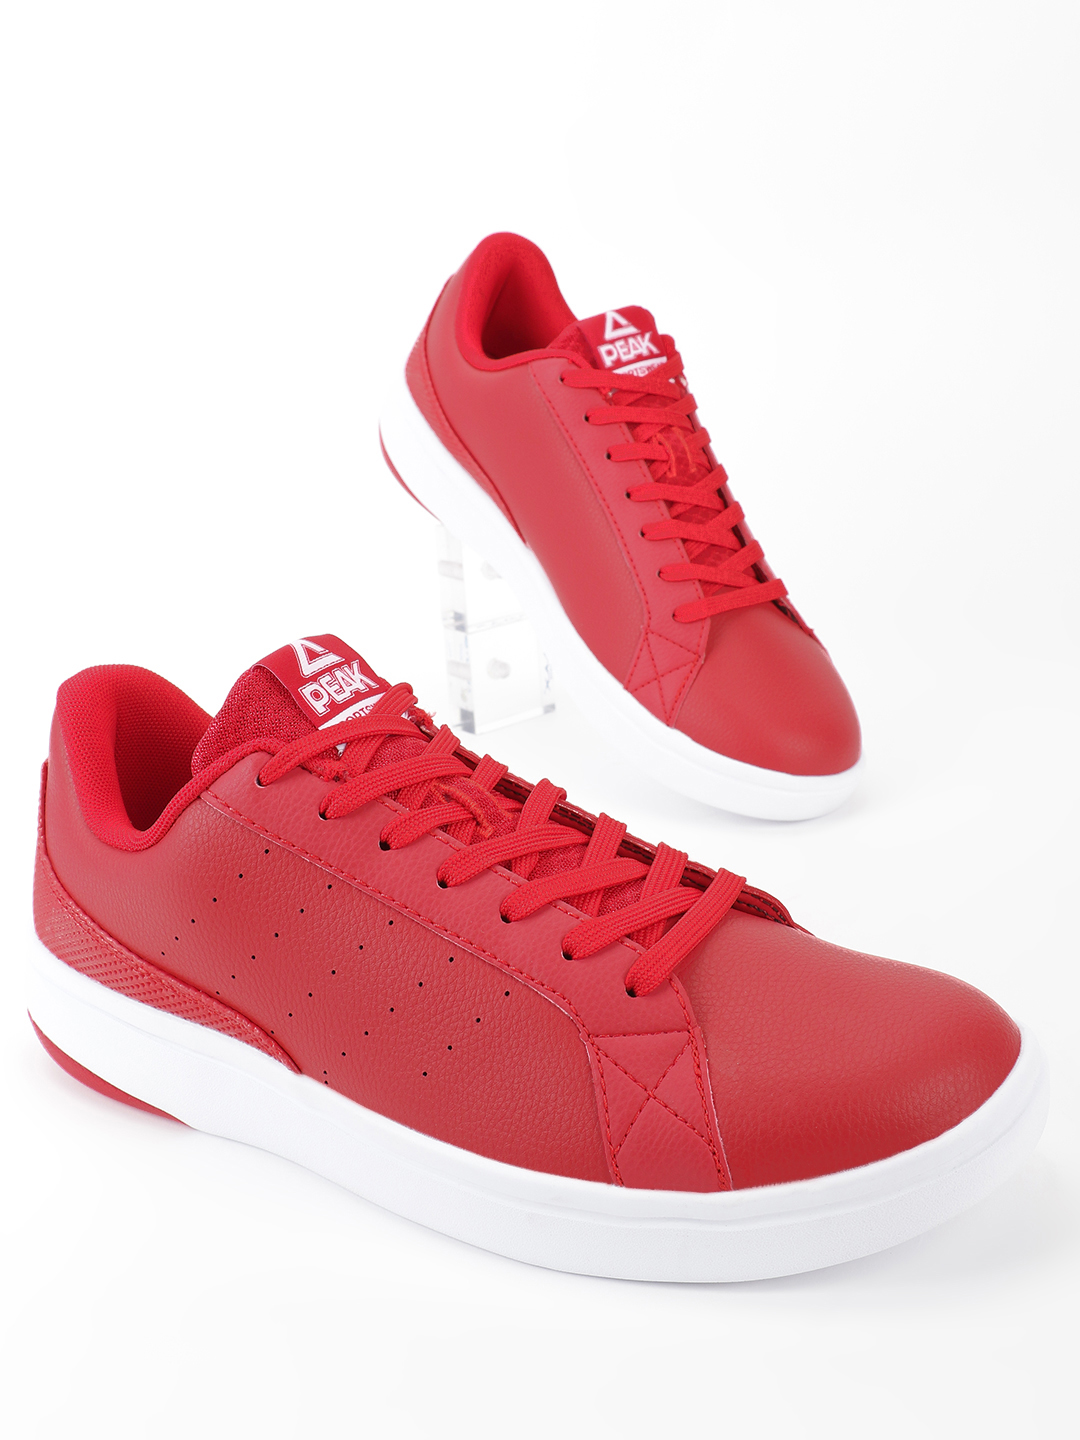 Peak Red Contrast Sole Lace-Up Shoes 1